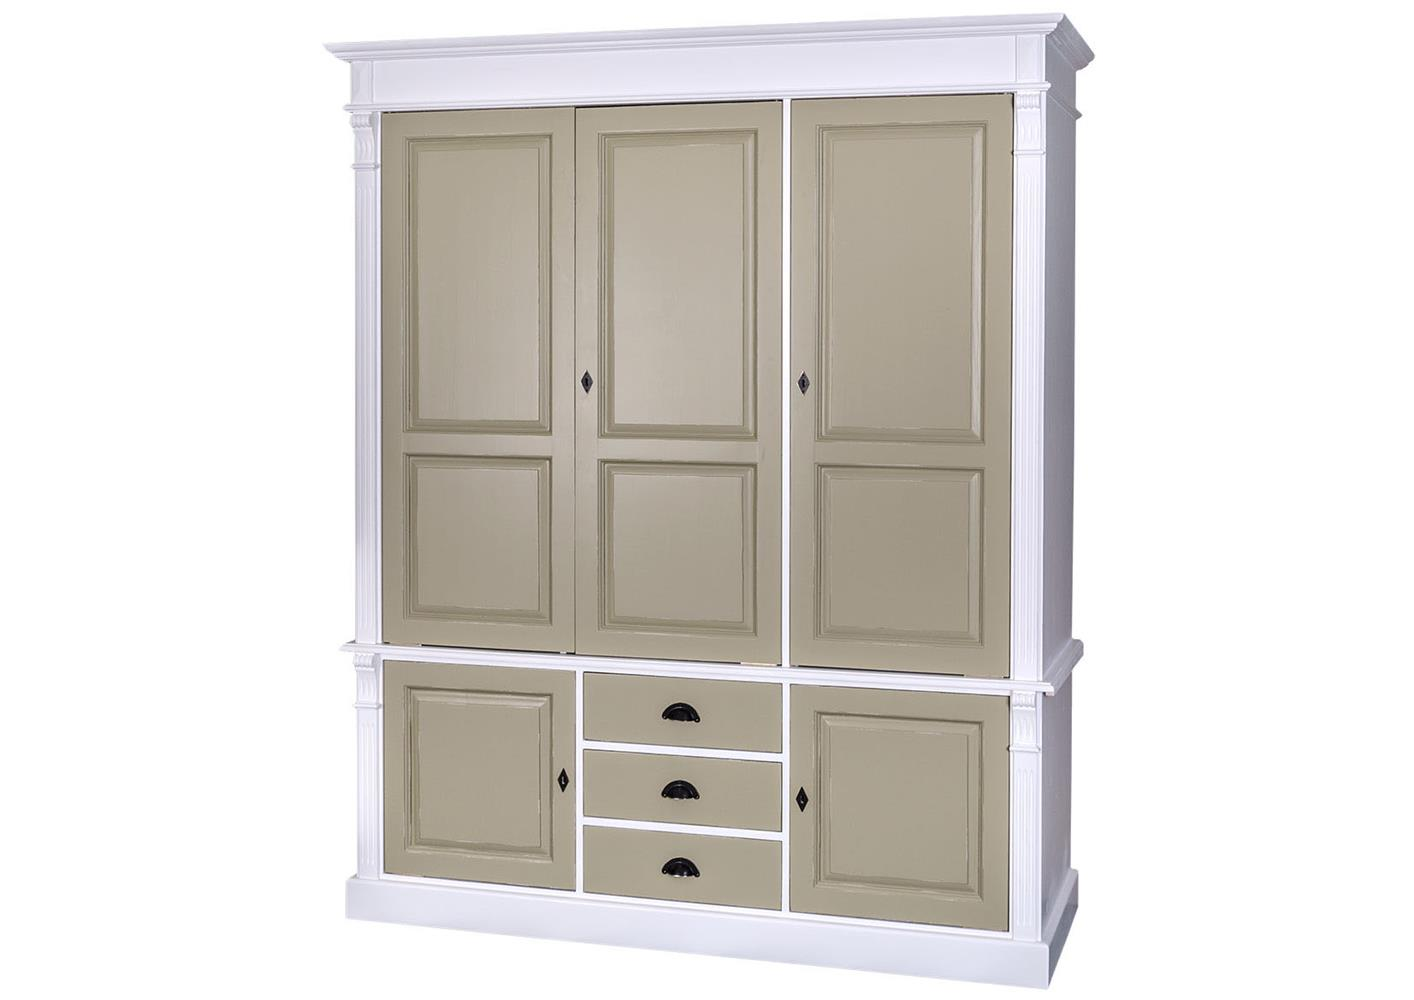 armoire avec penderie et tiroir 28 images armoire lindley 3 portes 4 tiroirs 2 3 penderie la. Black Bedroom Furniture Sets. Home Design Ideas